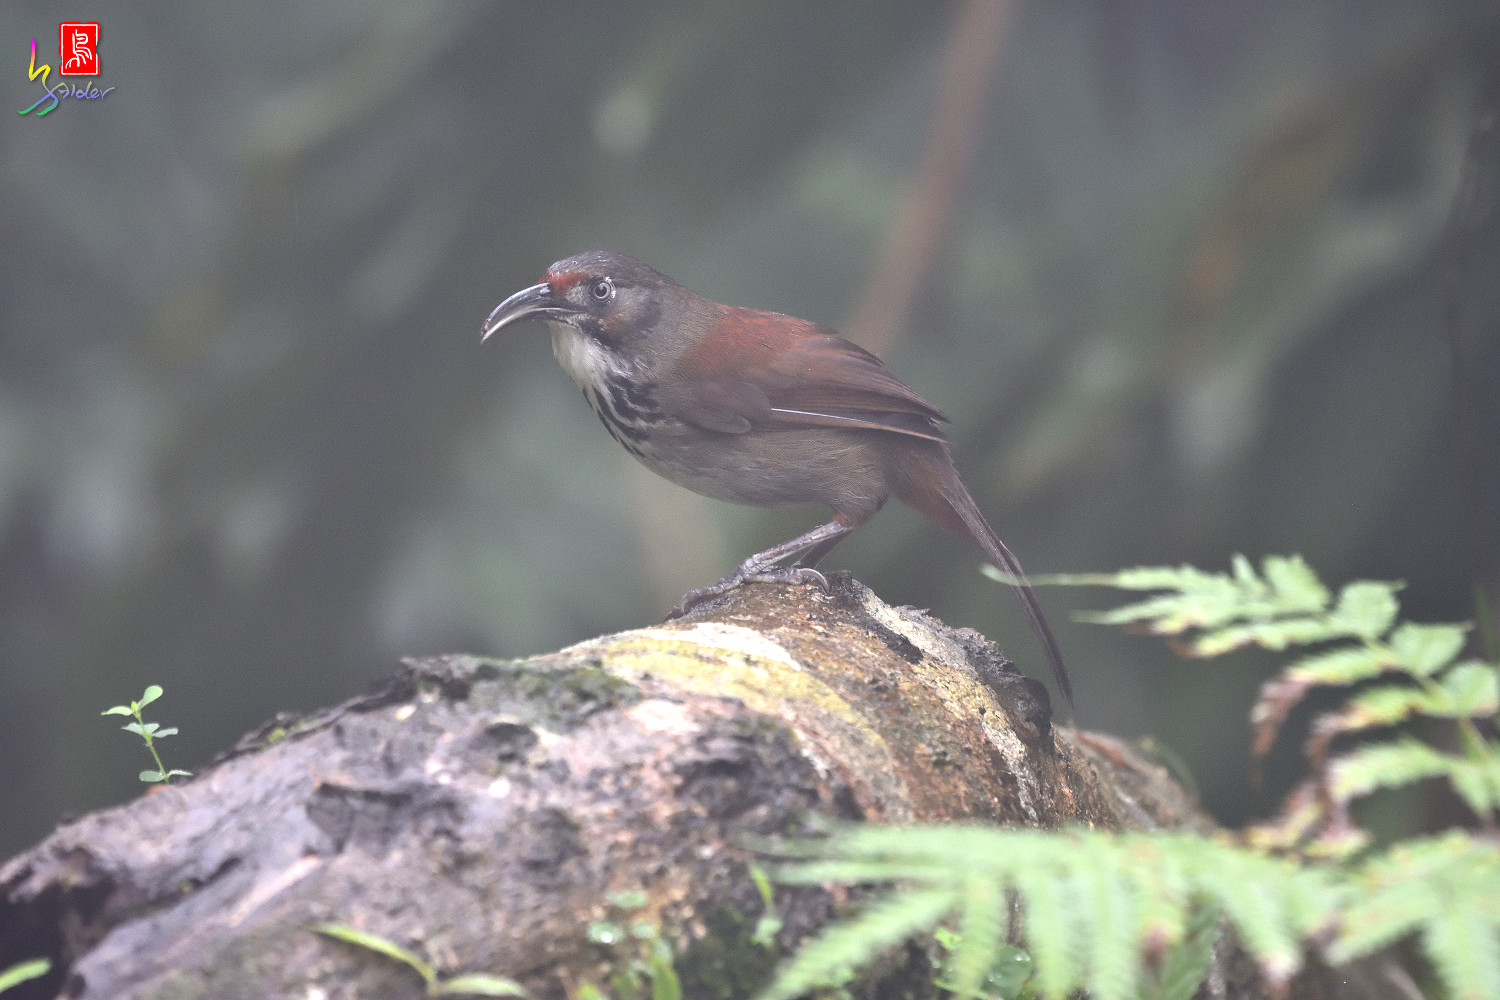 Rusty-cheeked_Scimitar-babbler_4365